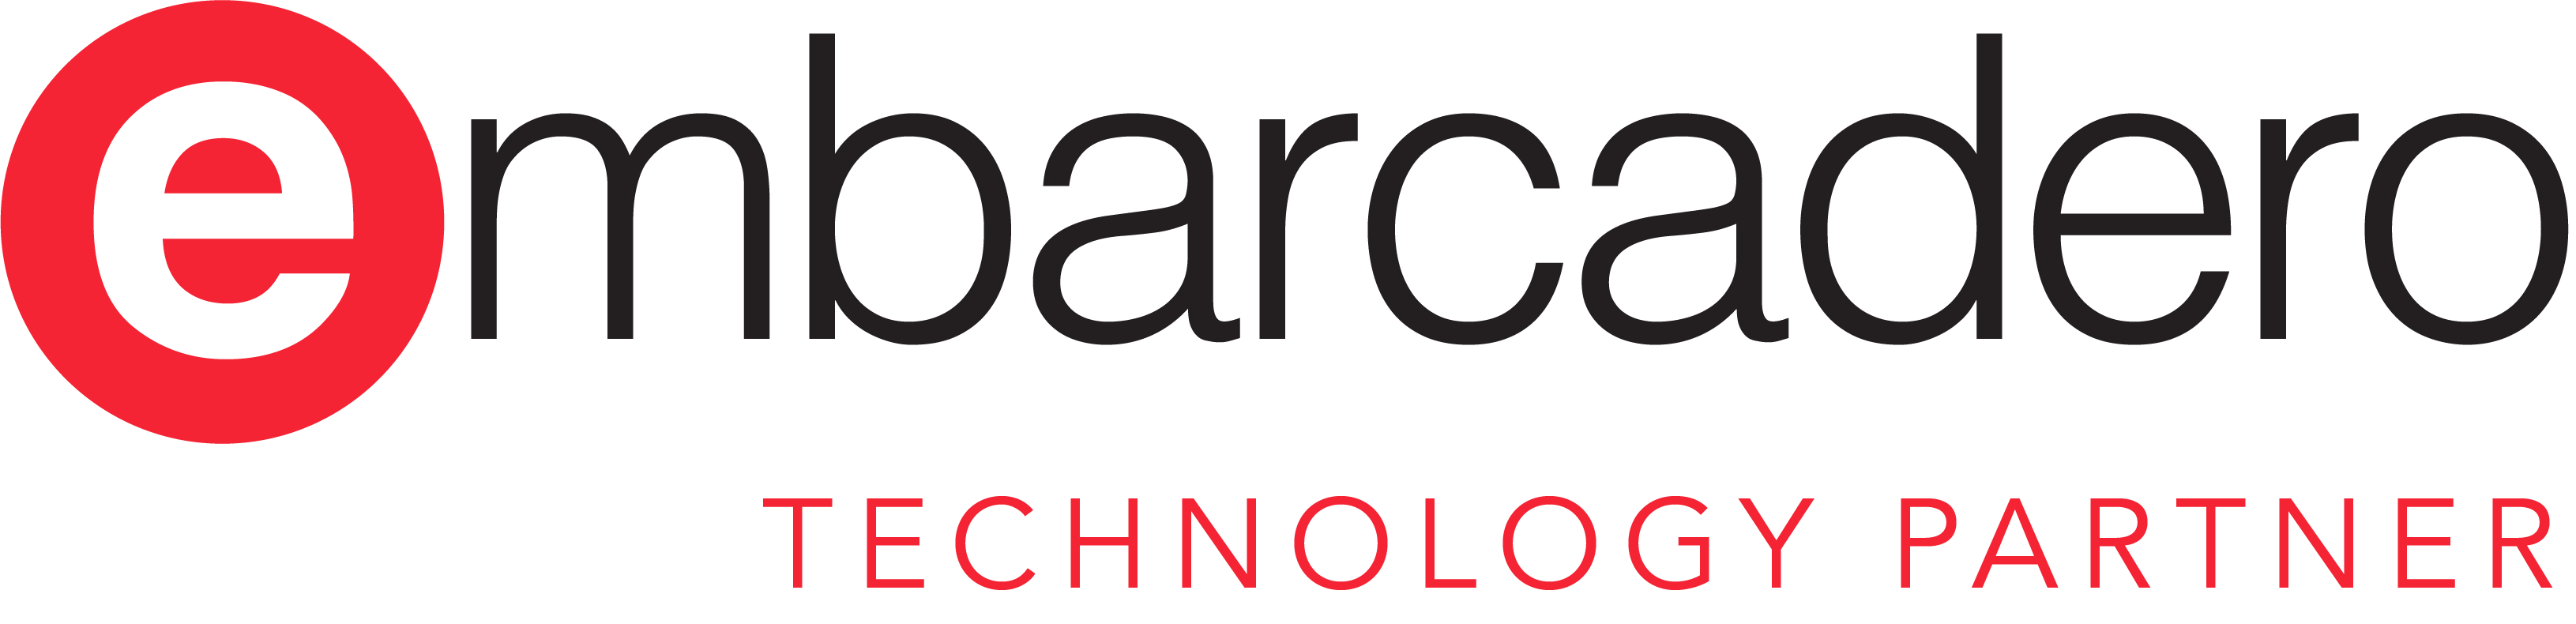 Embarcadero Technology Partner